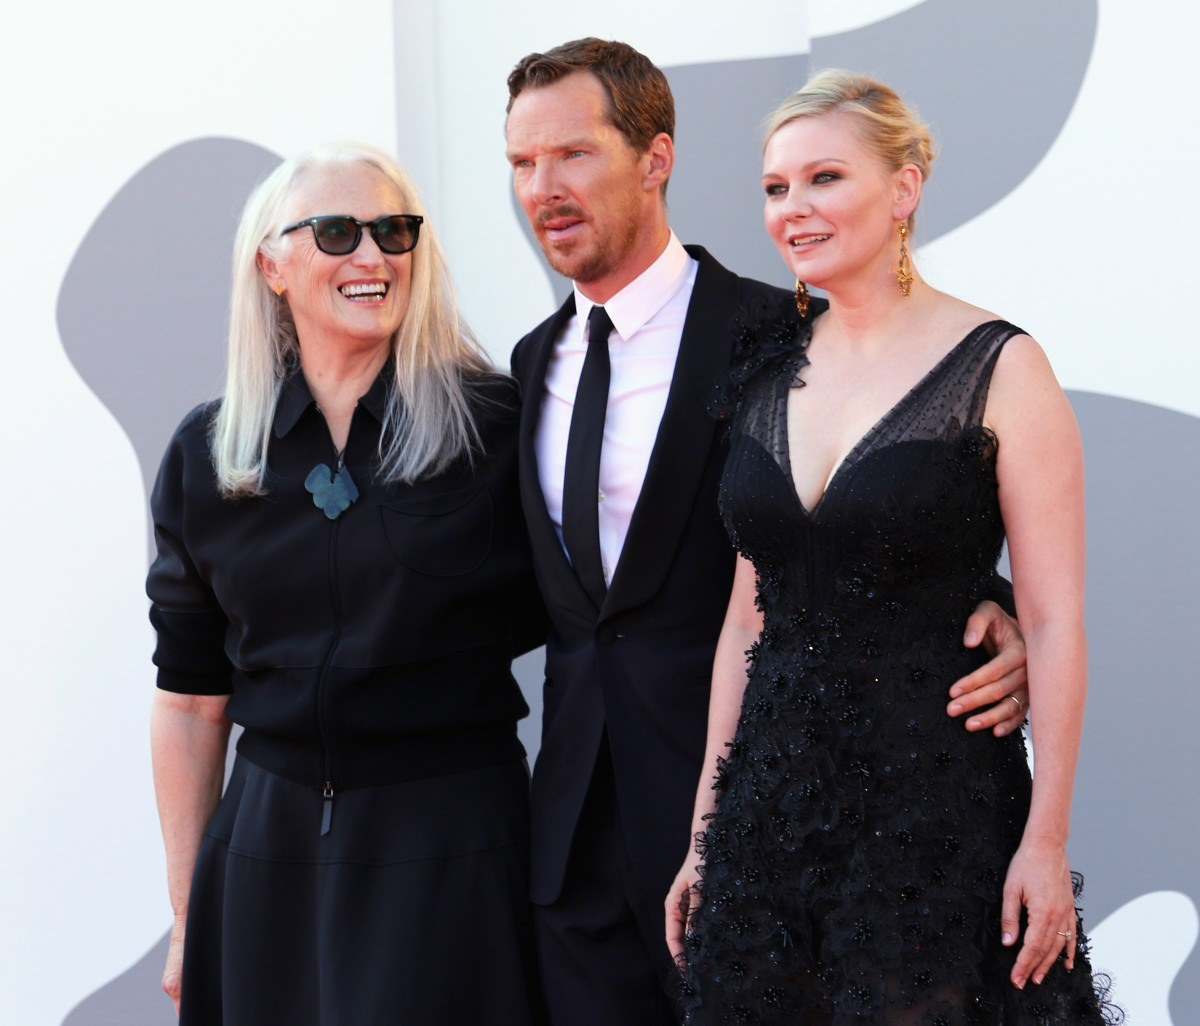 Jane Campion, Benedict Cumberbatch and Kirsten Dunst attend the red carpet of the movie 'The Power of the Dog' during the 78th Venice International Film Festival